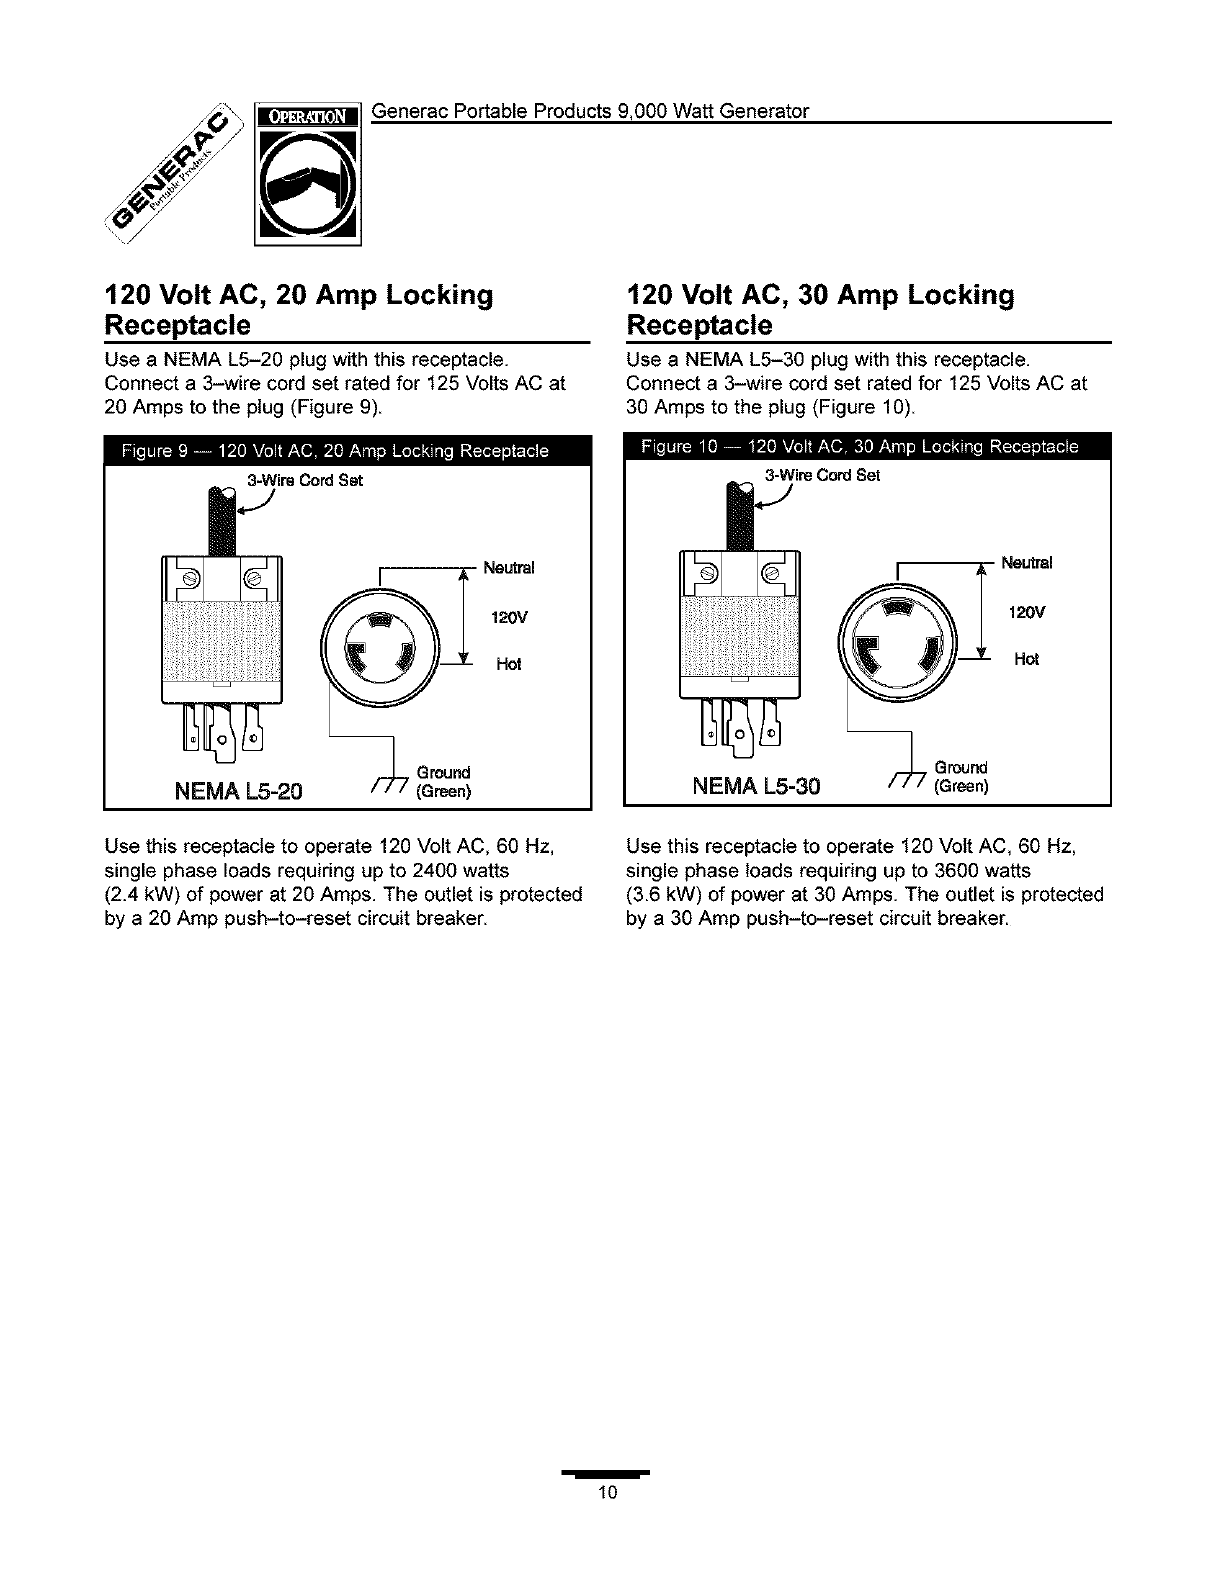 Generac 1338 1 User Manual Generator Manuals And Guides L0403233 Wiring Harness Connectors Generacportableproducts9000wattgenerator